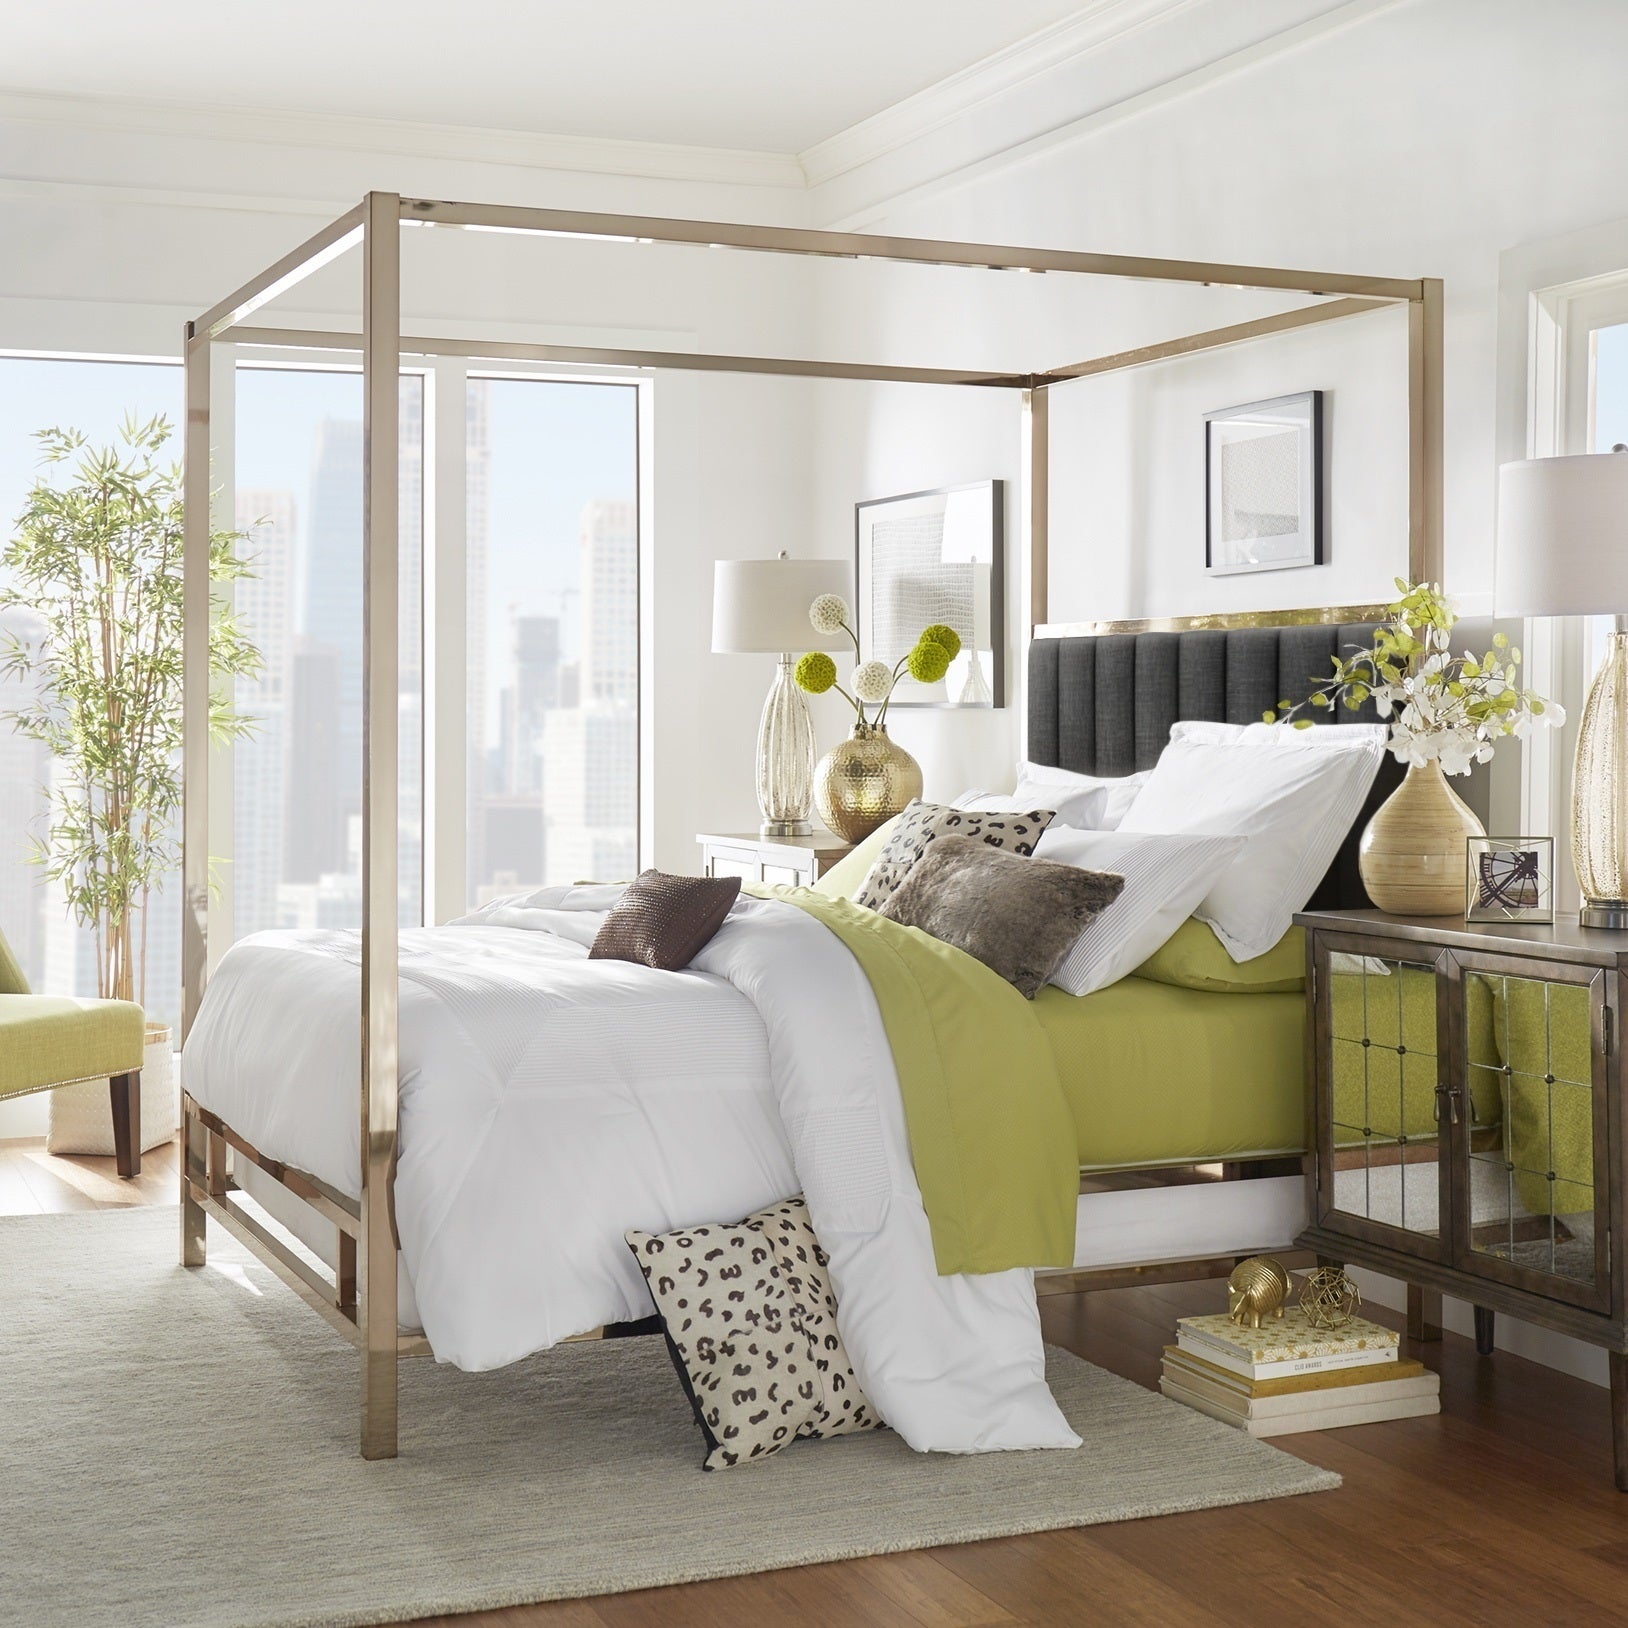 Solivita Ch&agne Gold Metal Canopy Bed with Vertical Channel Headboard by iNSPIRE Q Bold - Free Shipping Today - Overstock.com - 24872922 & Solivita Champagne Gold Metal Canopy Bed with Vertical Channel ...